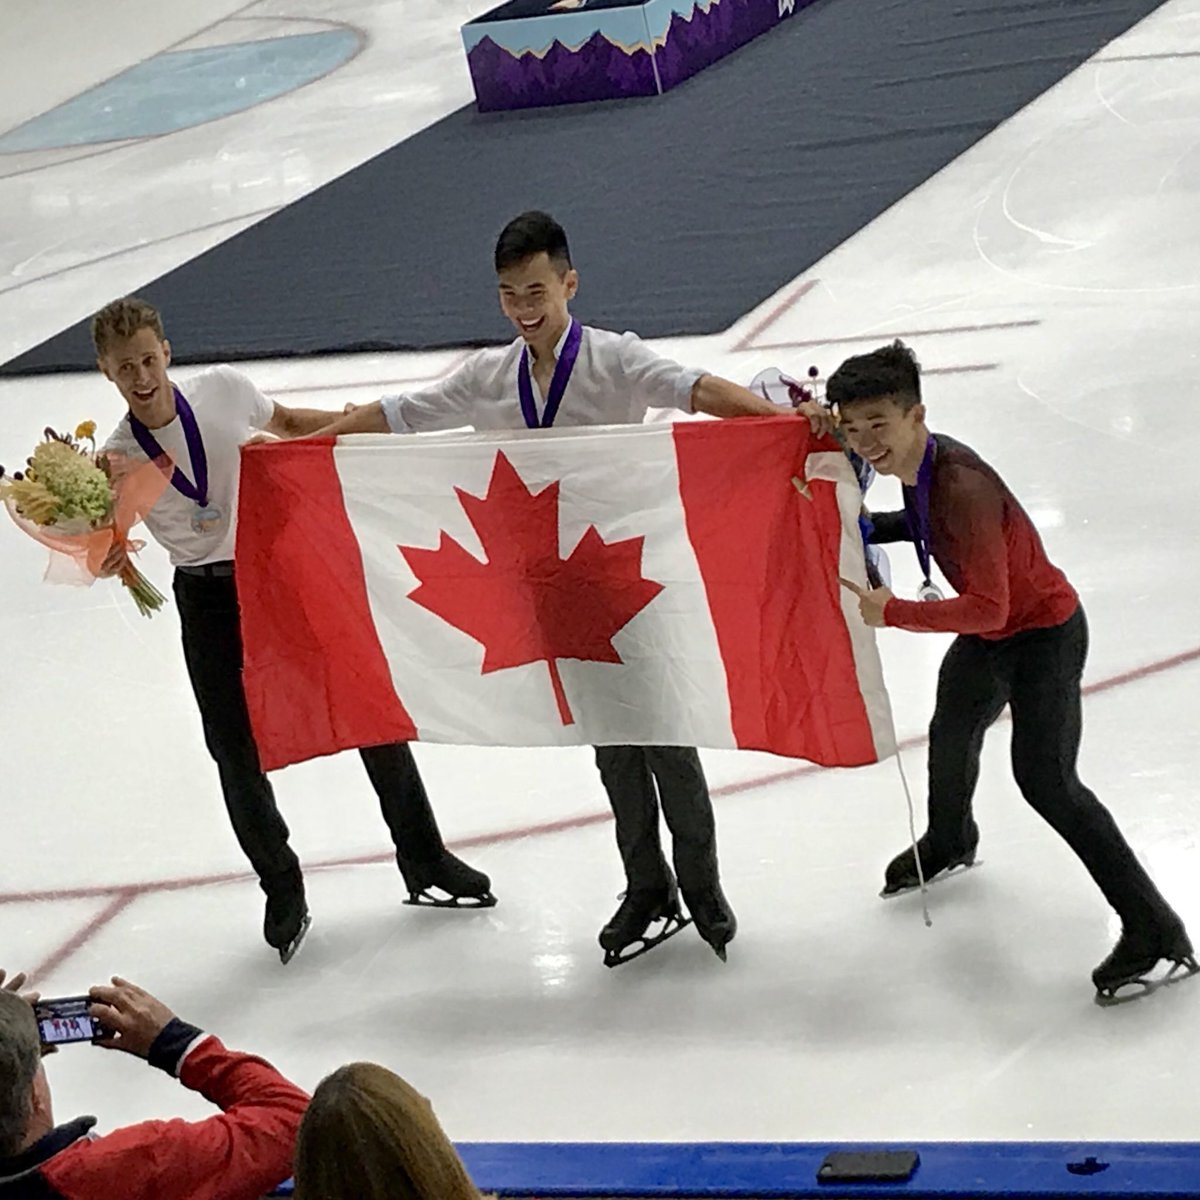 Celebration with the US Classic Mens podium: Nam Nyugen, Michal Brezina and Jimmy Ma (   Photo credit   ).